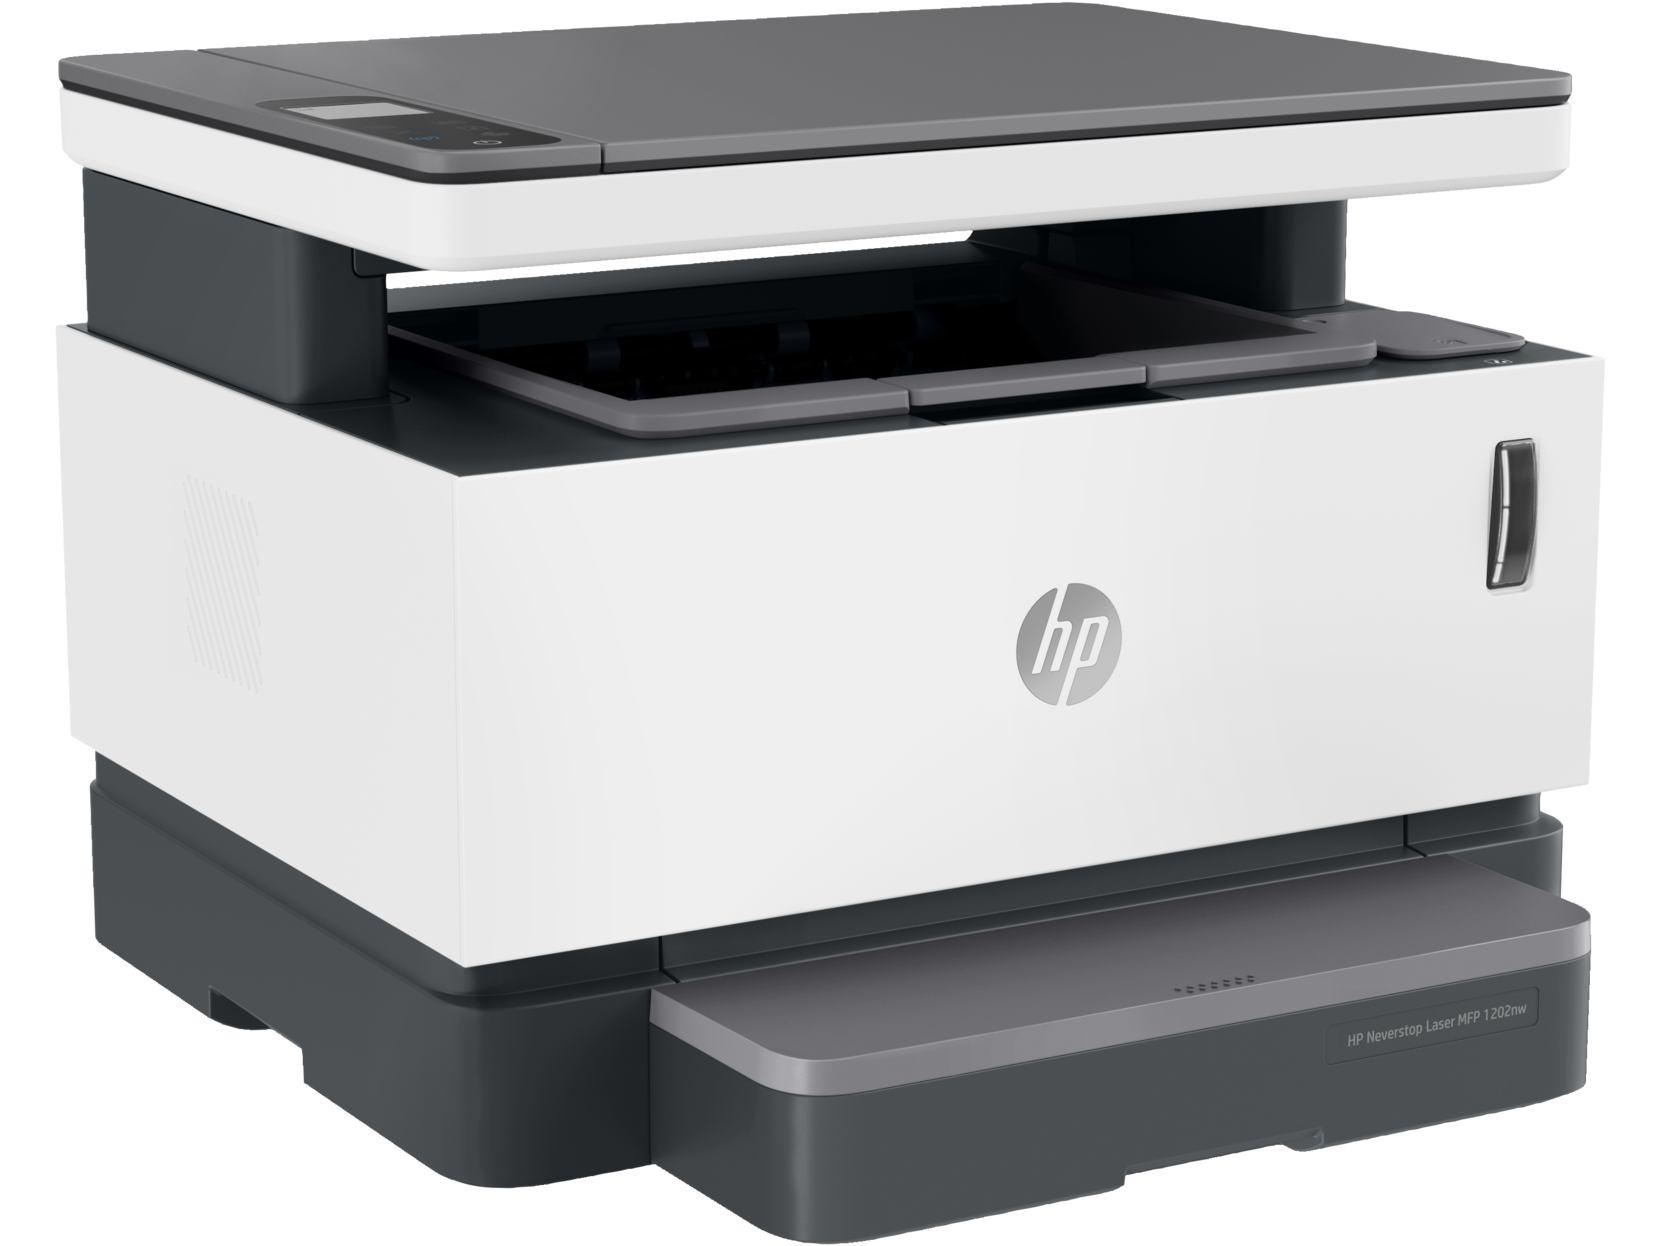 HP Neverstop 1202nw Color Laser MFP, New (5HG93A)